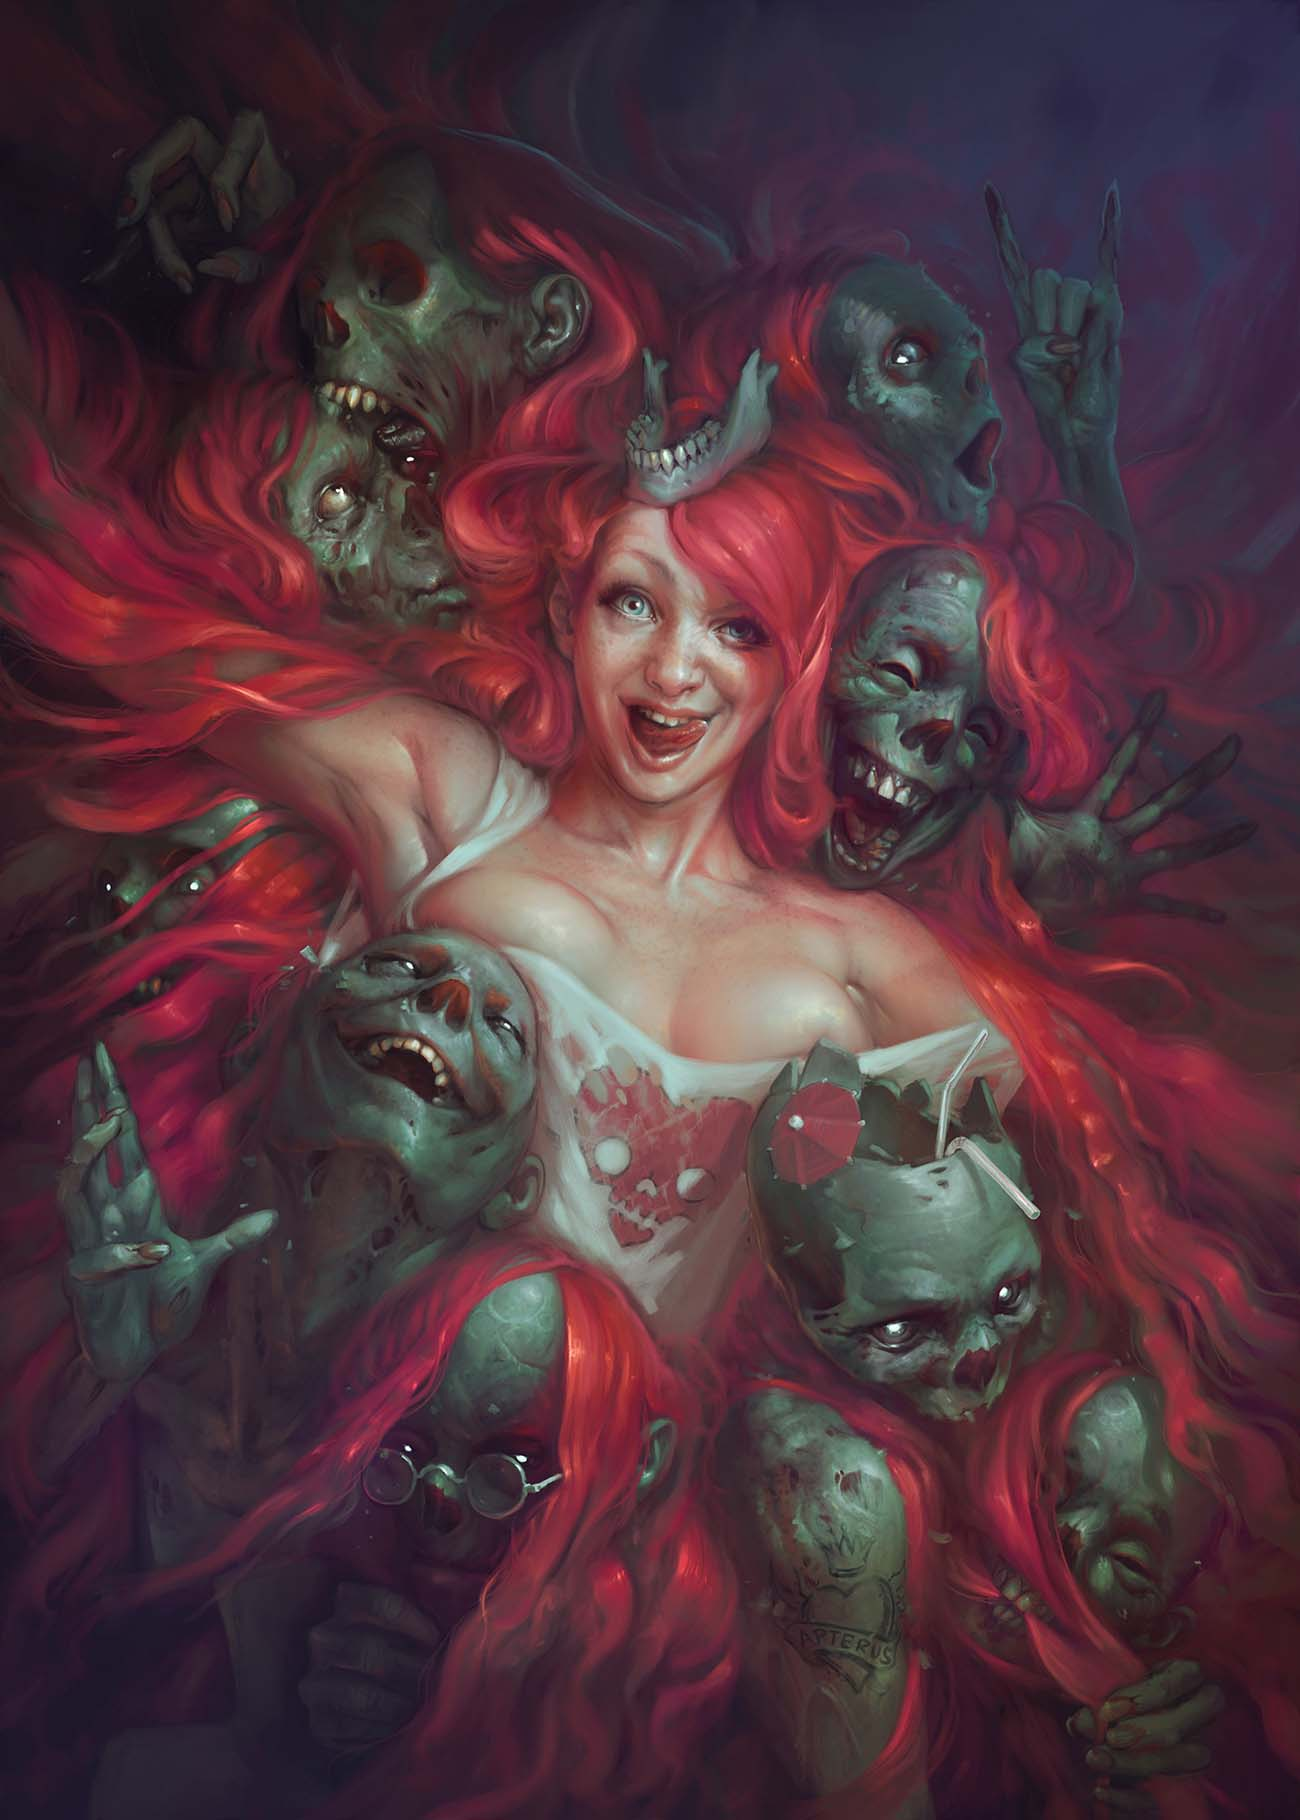 Sabbas Apterus | Paintable.cc 25 Spooky Halloween Digital Paintings to Give You Nightmares! #digitalpainting #digitalart #halloween